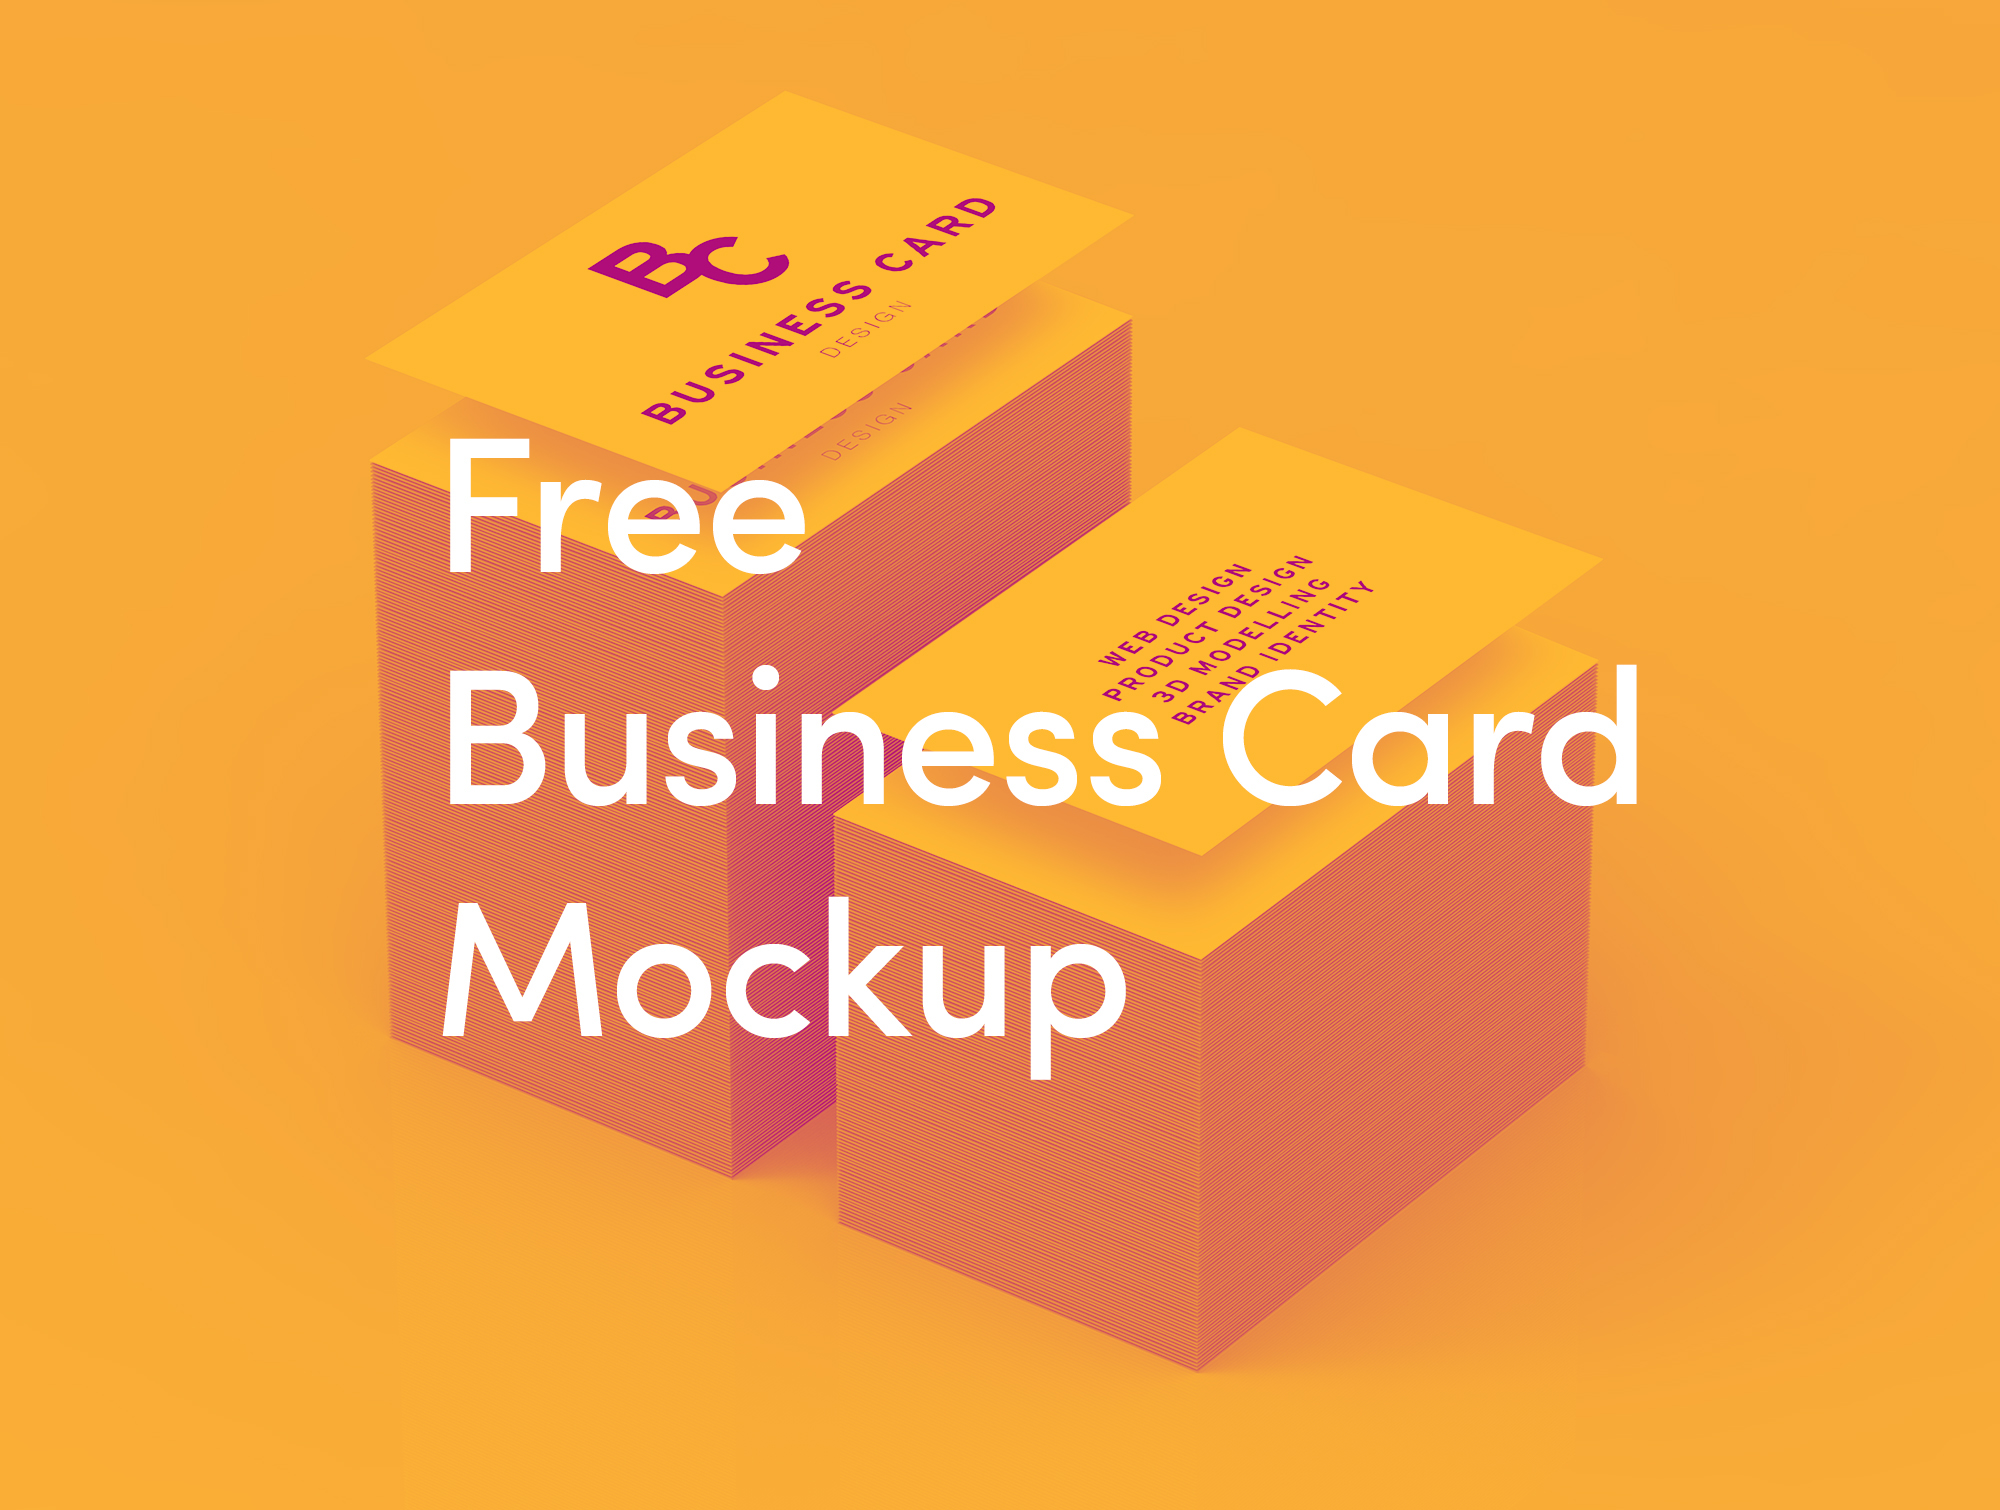 Free Business Card Mockup High Quality on Behance